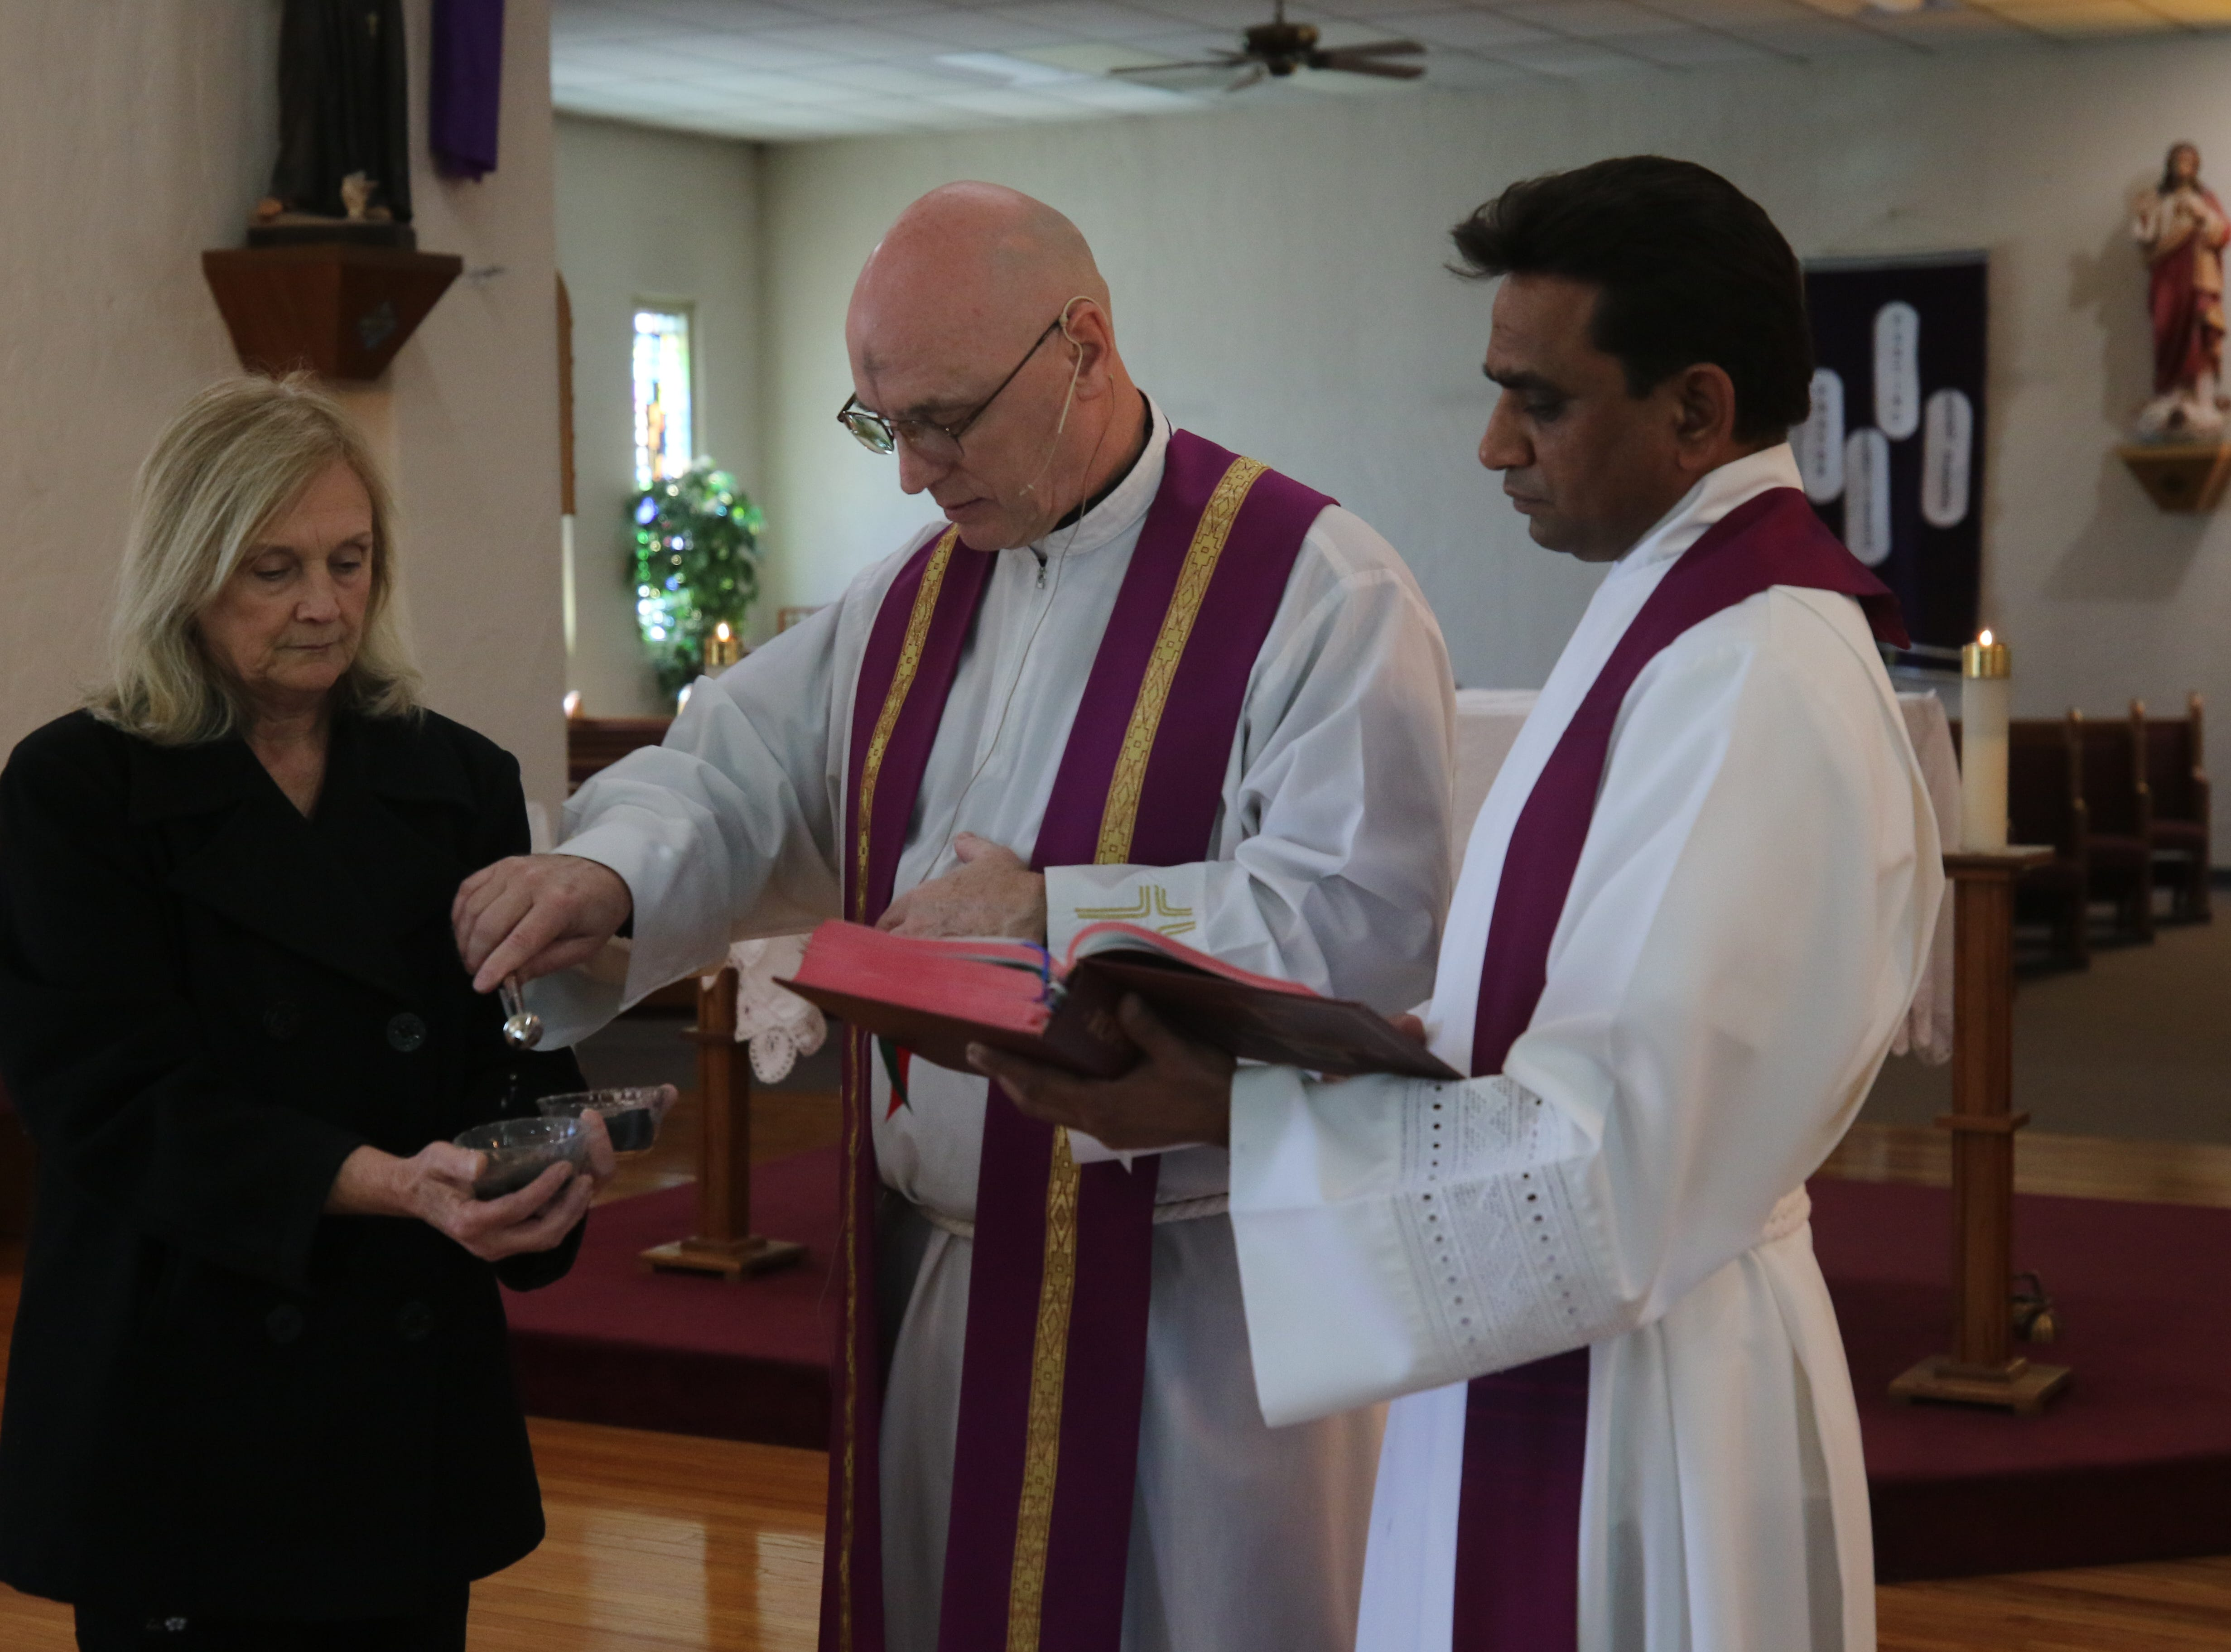 Ashes are prepared for an Ash Wednesday mass, March 6, 2019 at St Edward Catholic Church.